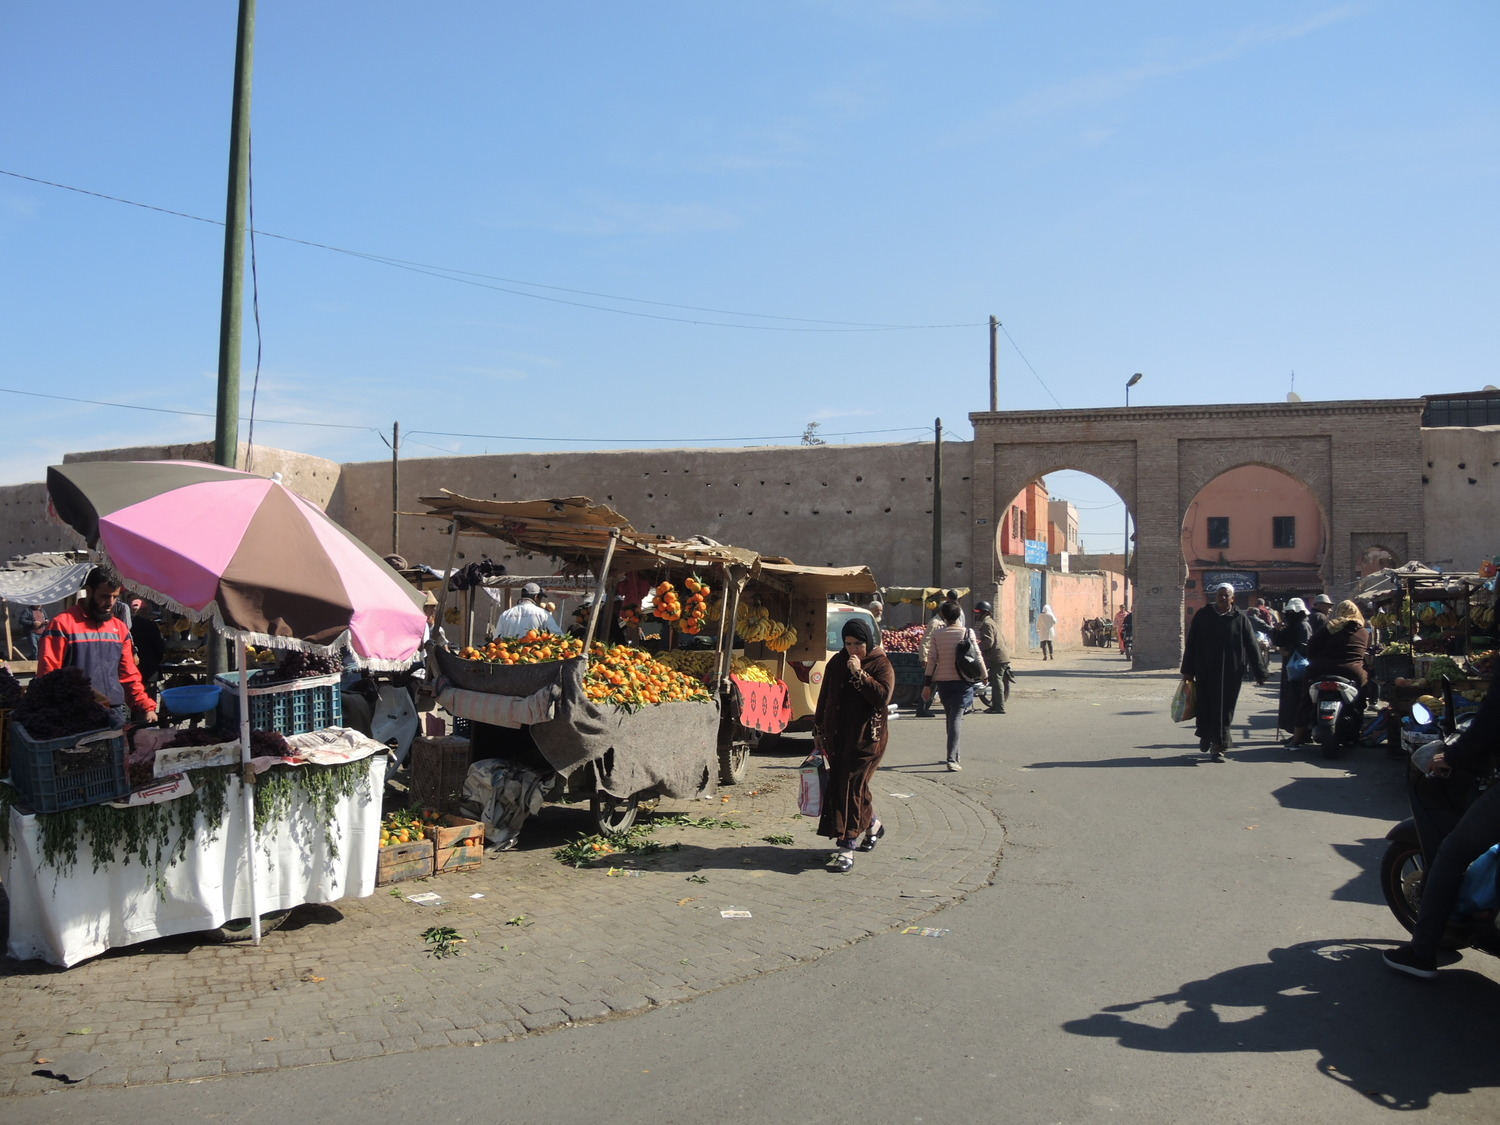 Street market in Marrakech